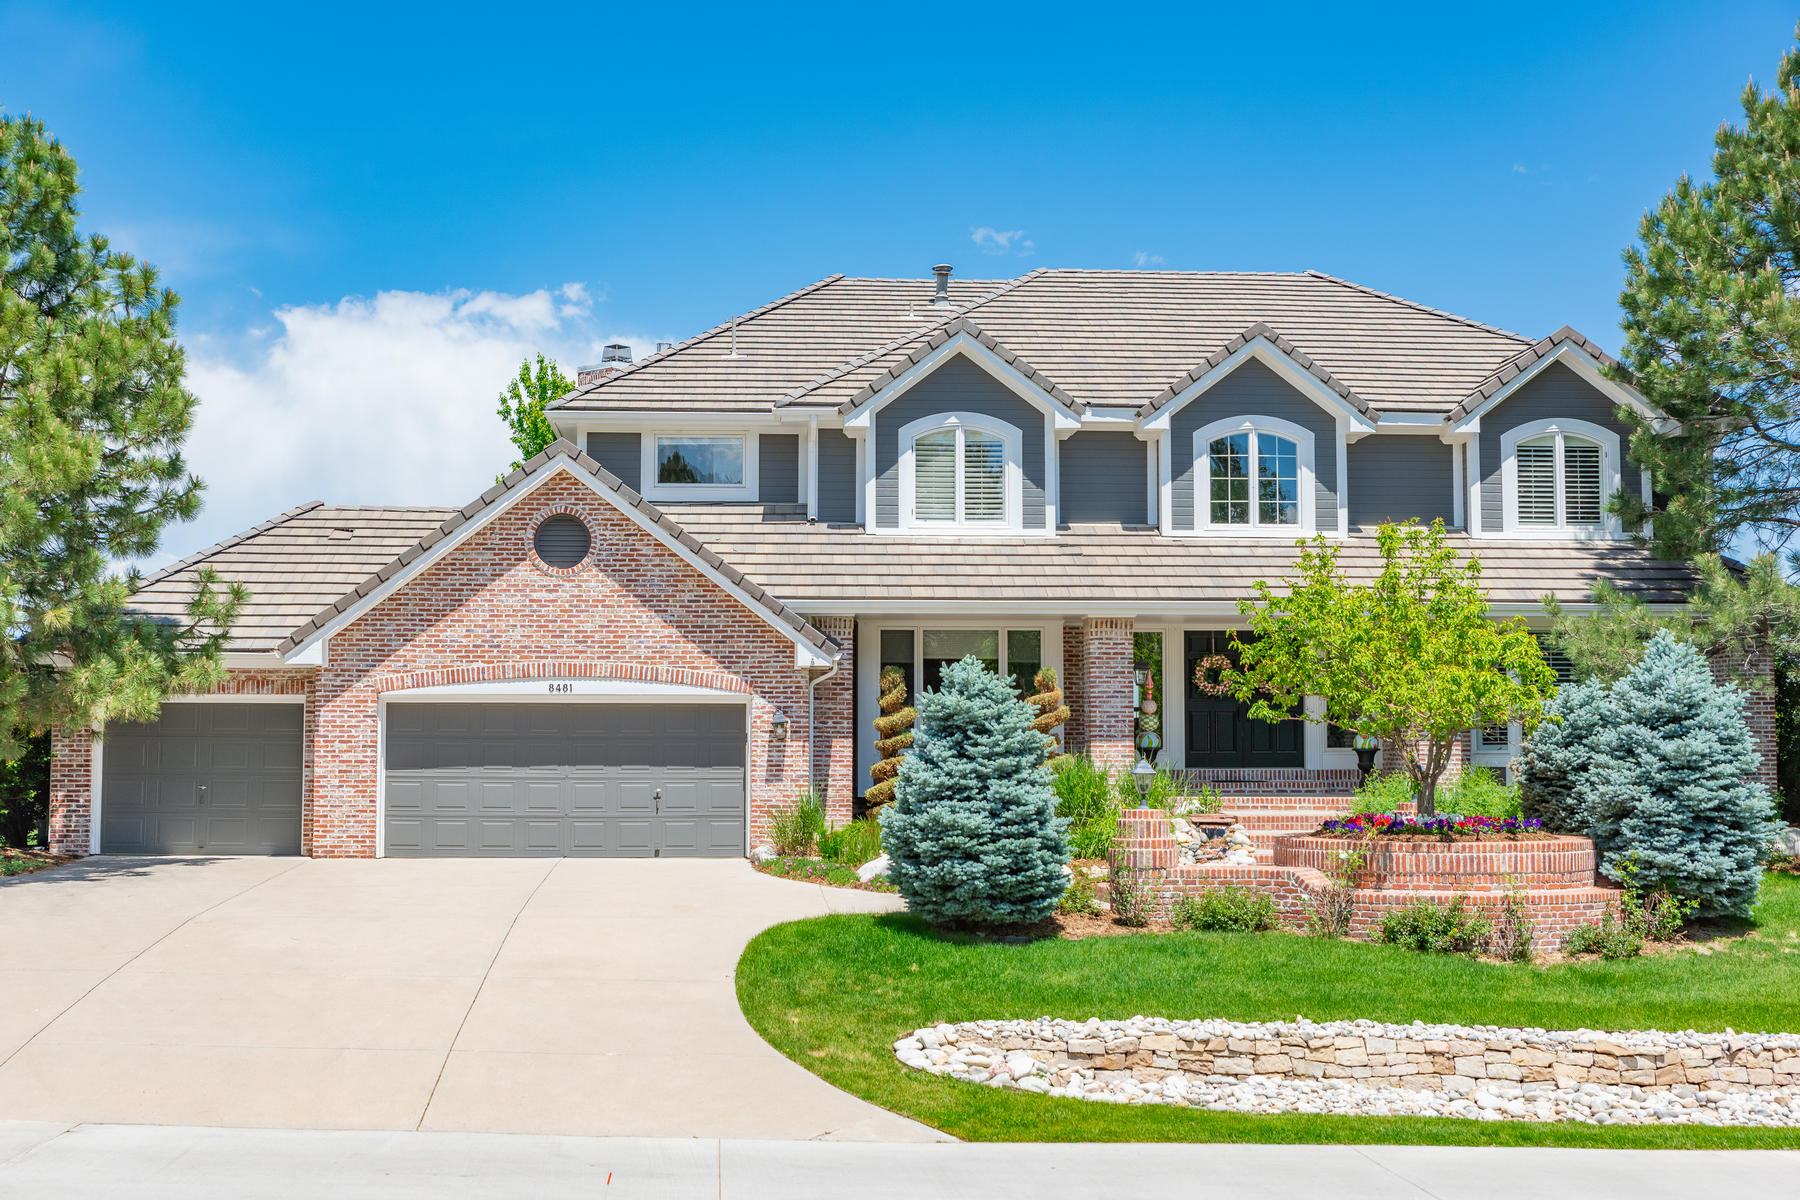 Single Family Homes for Sale at An exceptional home in Heritage Estates perfectly situated on a 1/3 acre lot 8481 Colonial Drive Lone Tree, Colorado 80124 United States